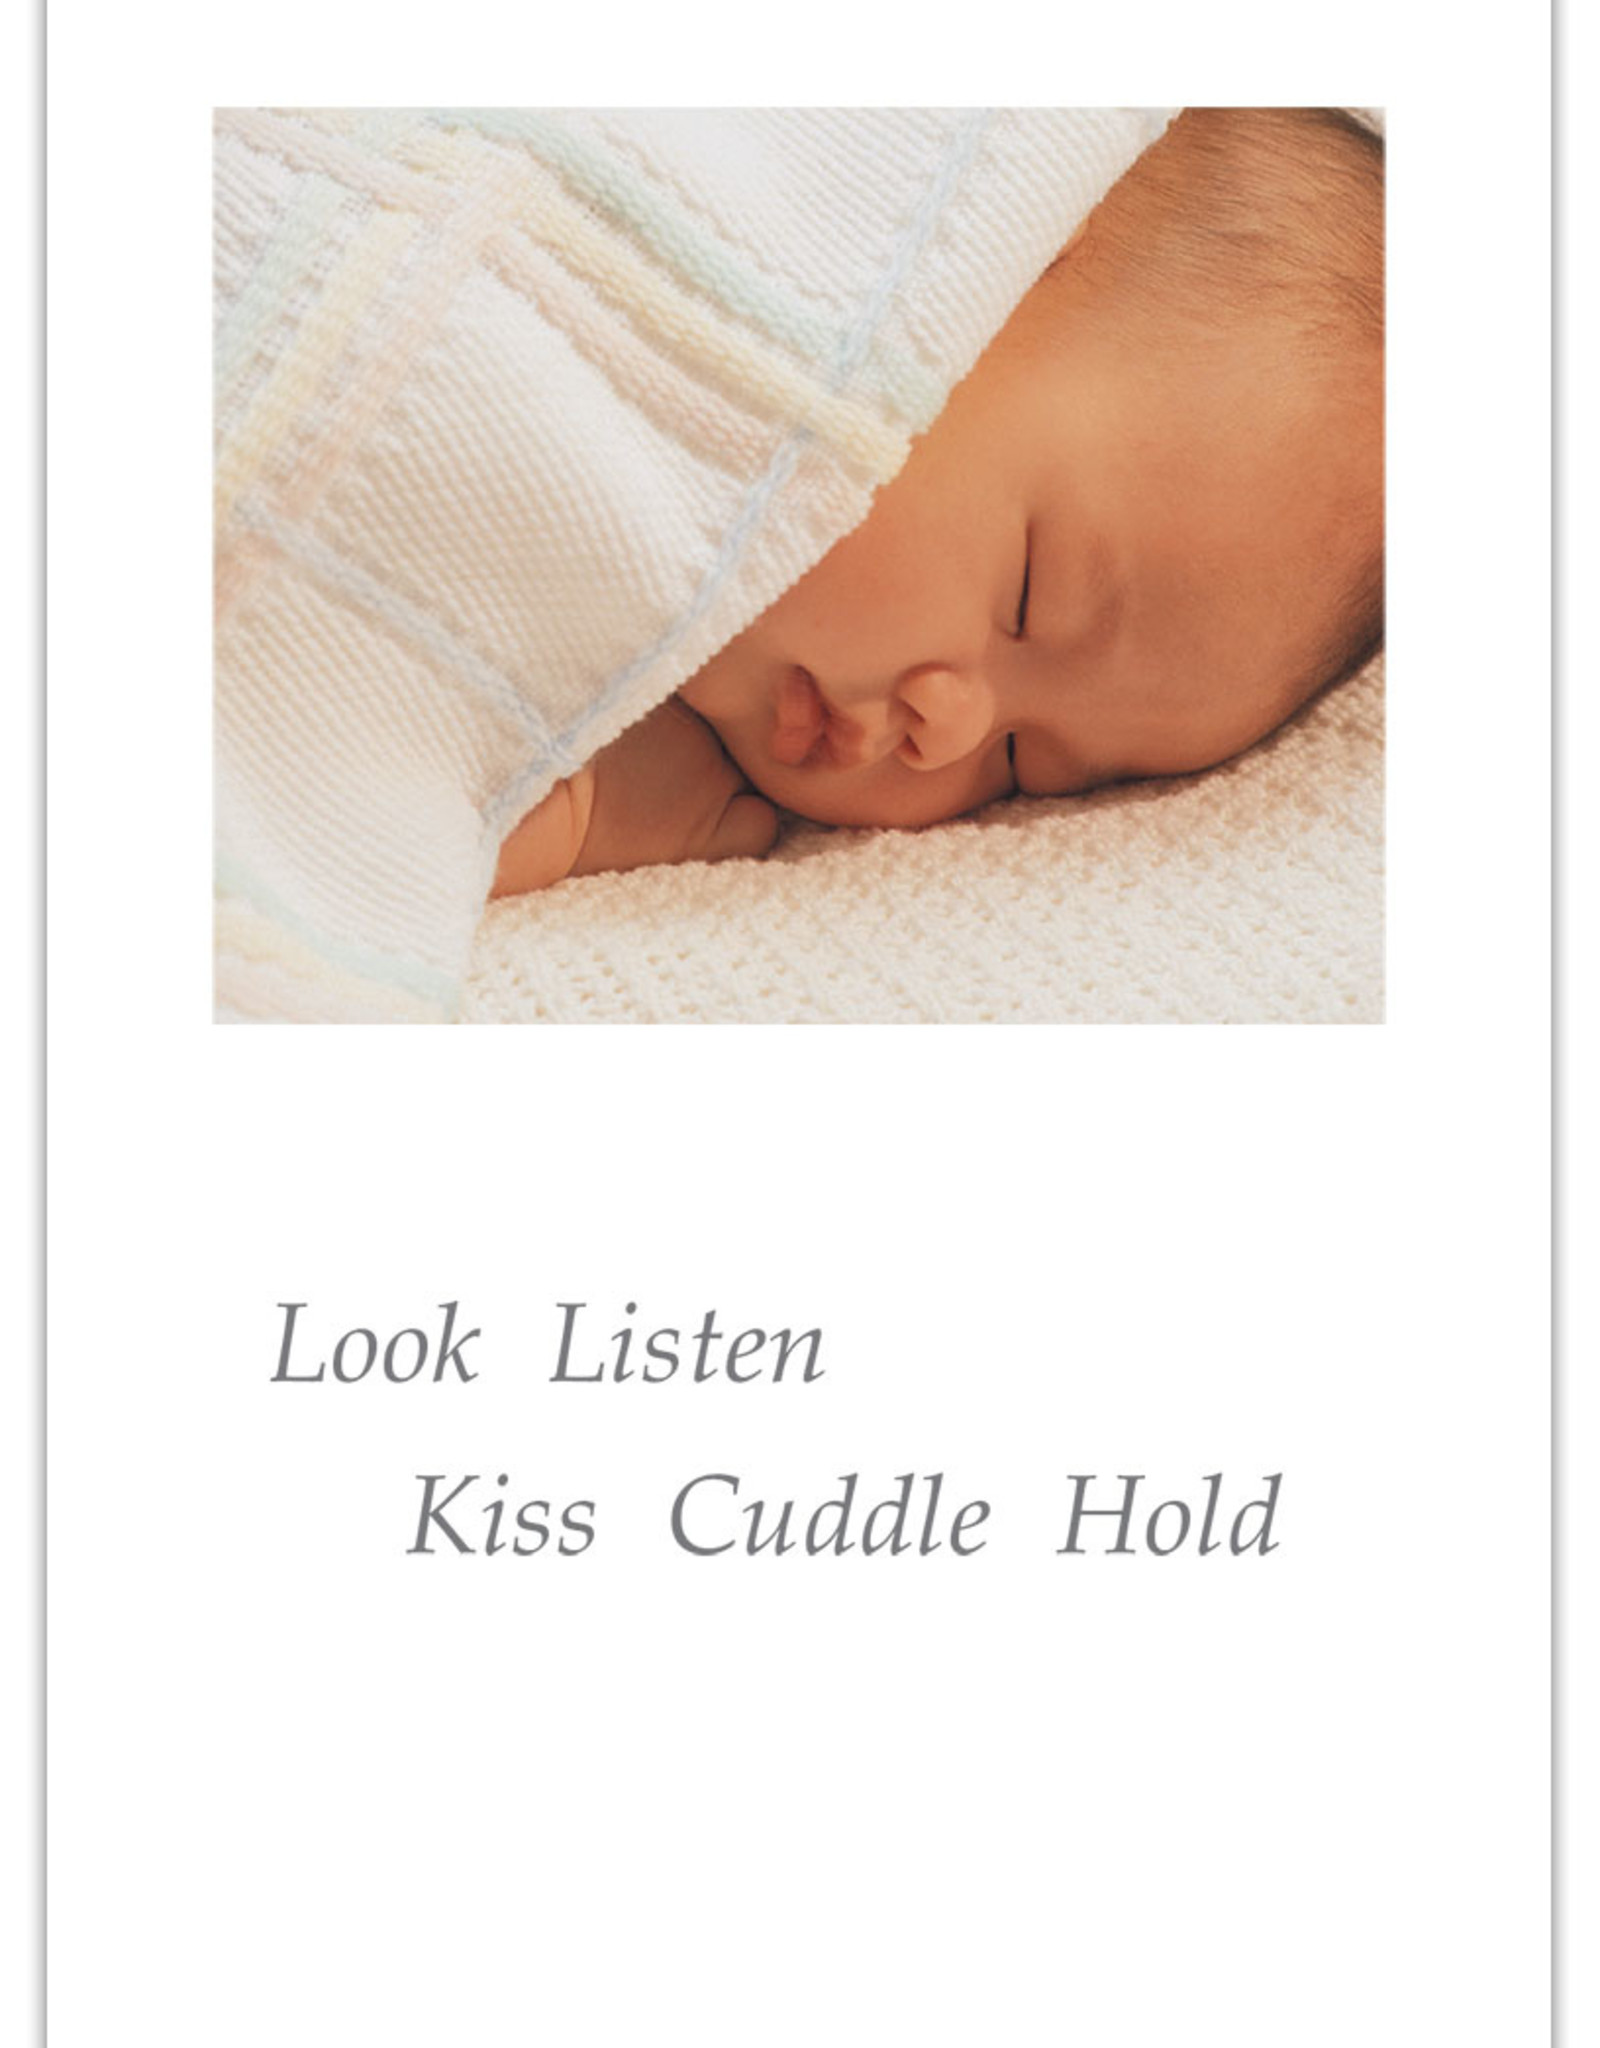 Cardthartic Cardthartic - Baby Sleeping in White Blanket New Baby Card